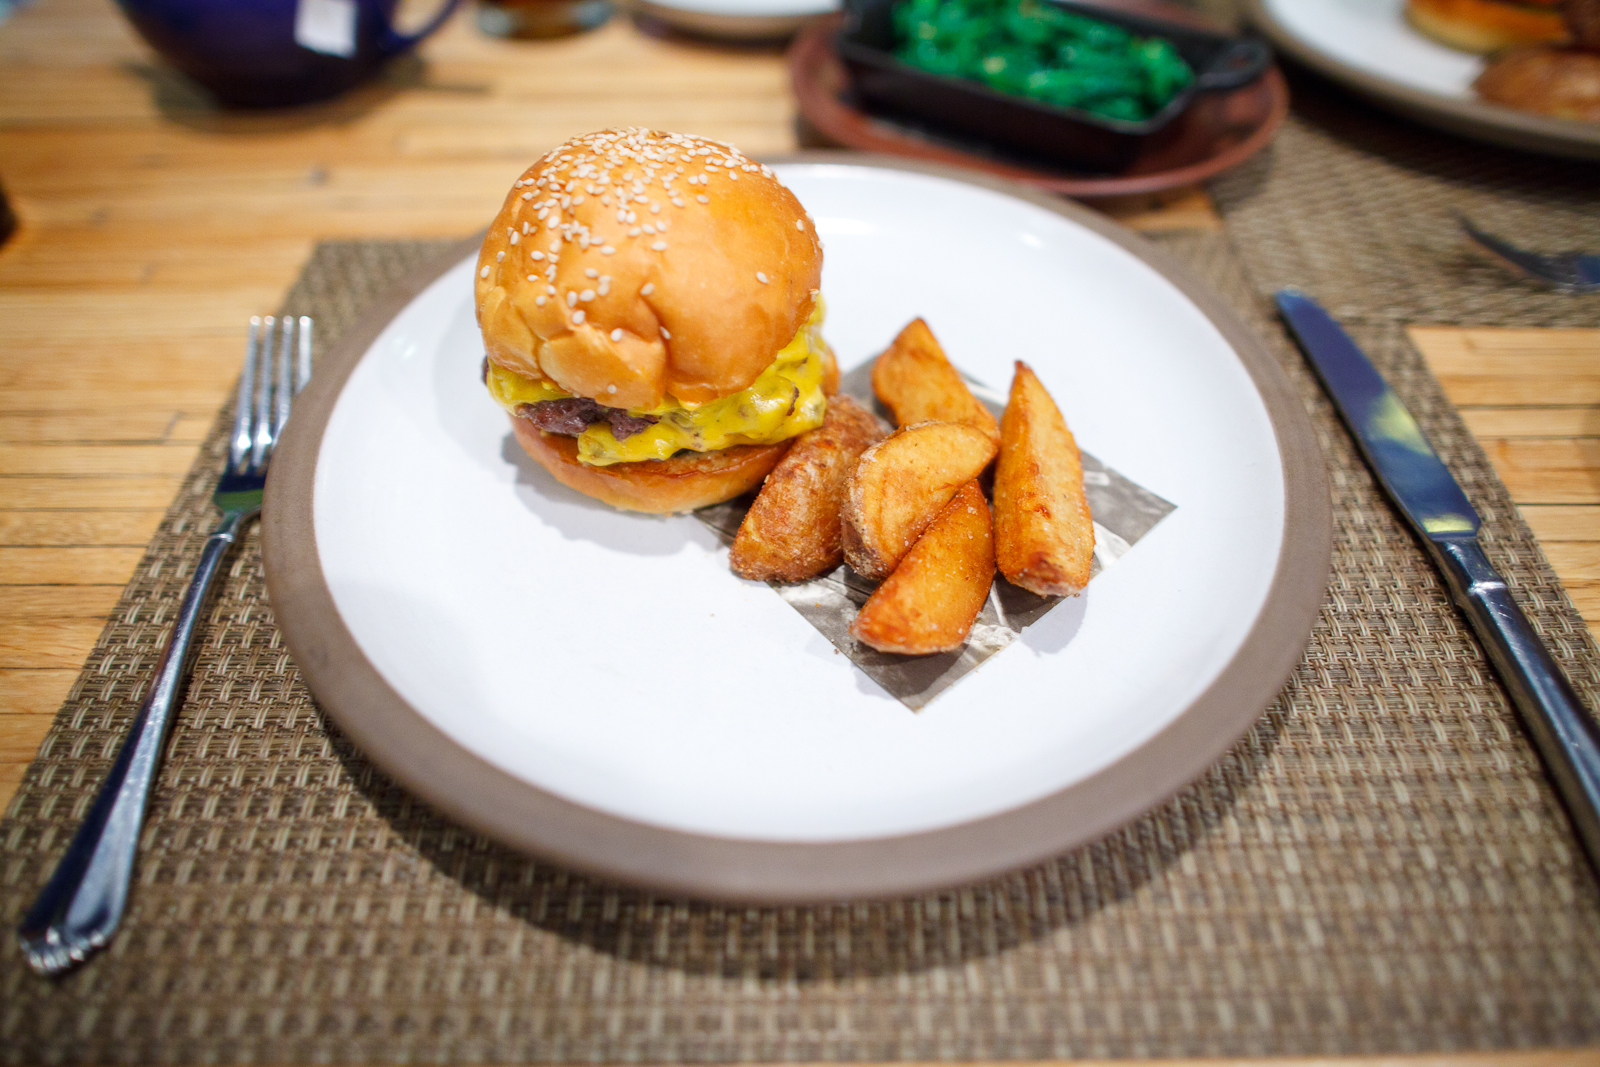 5th Course: HUSK Cheeseburger with Fried Potato Wedges